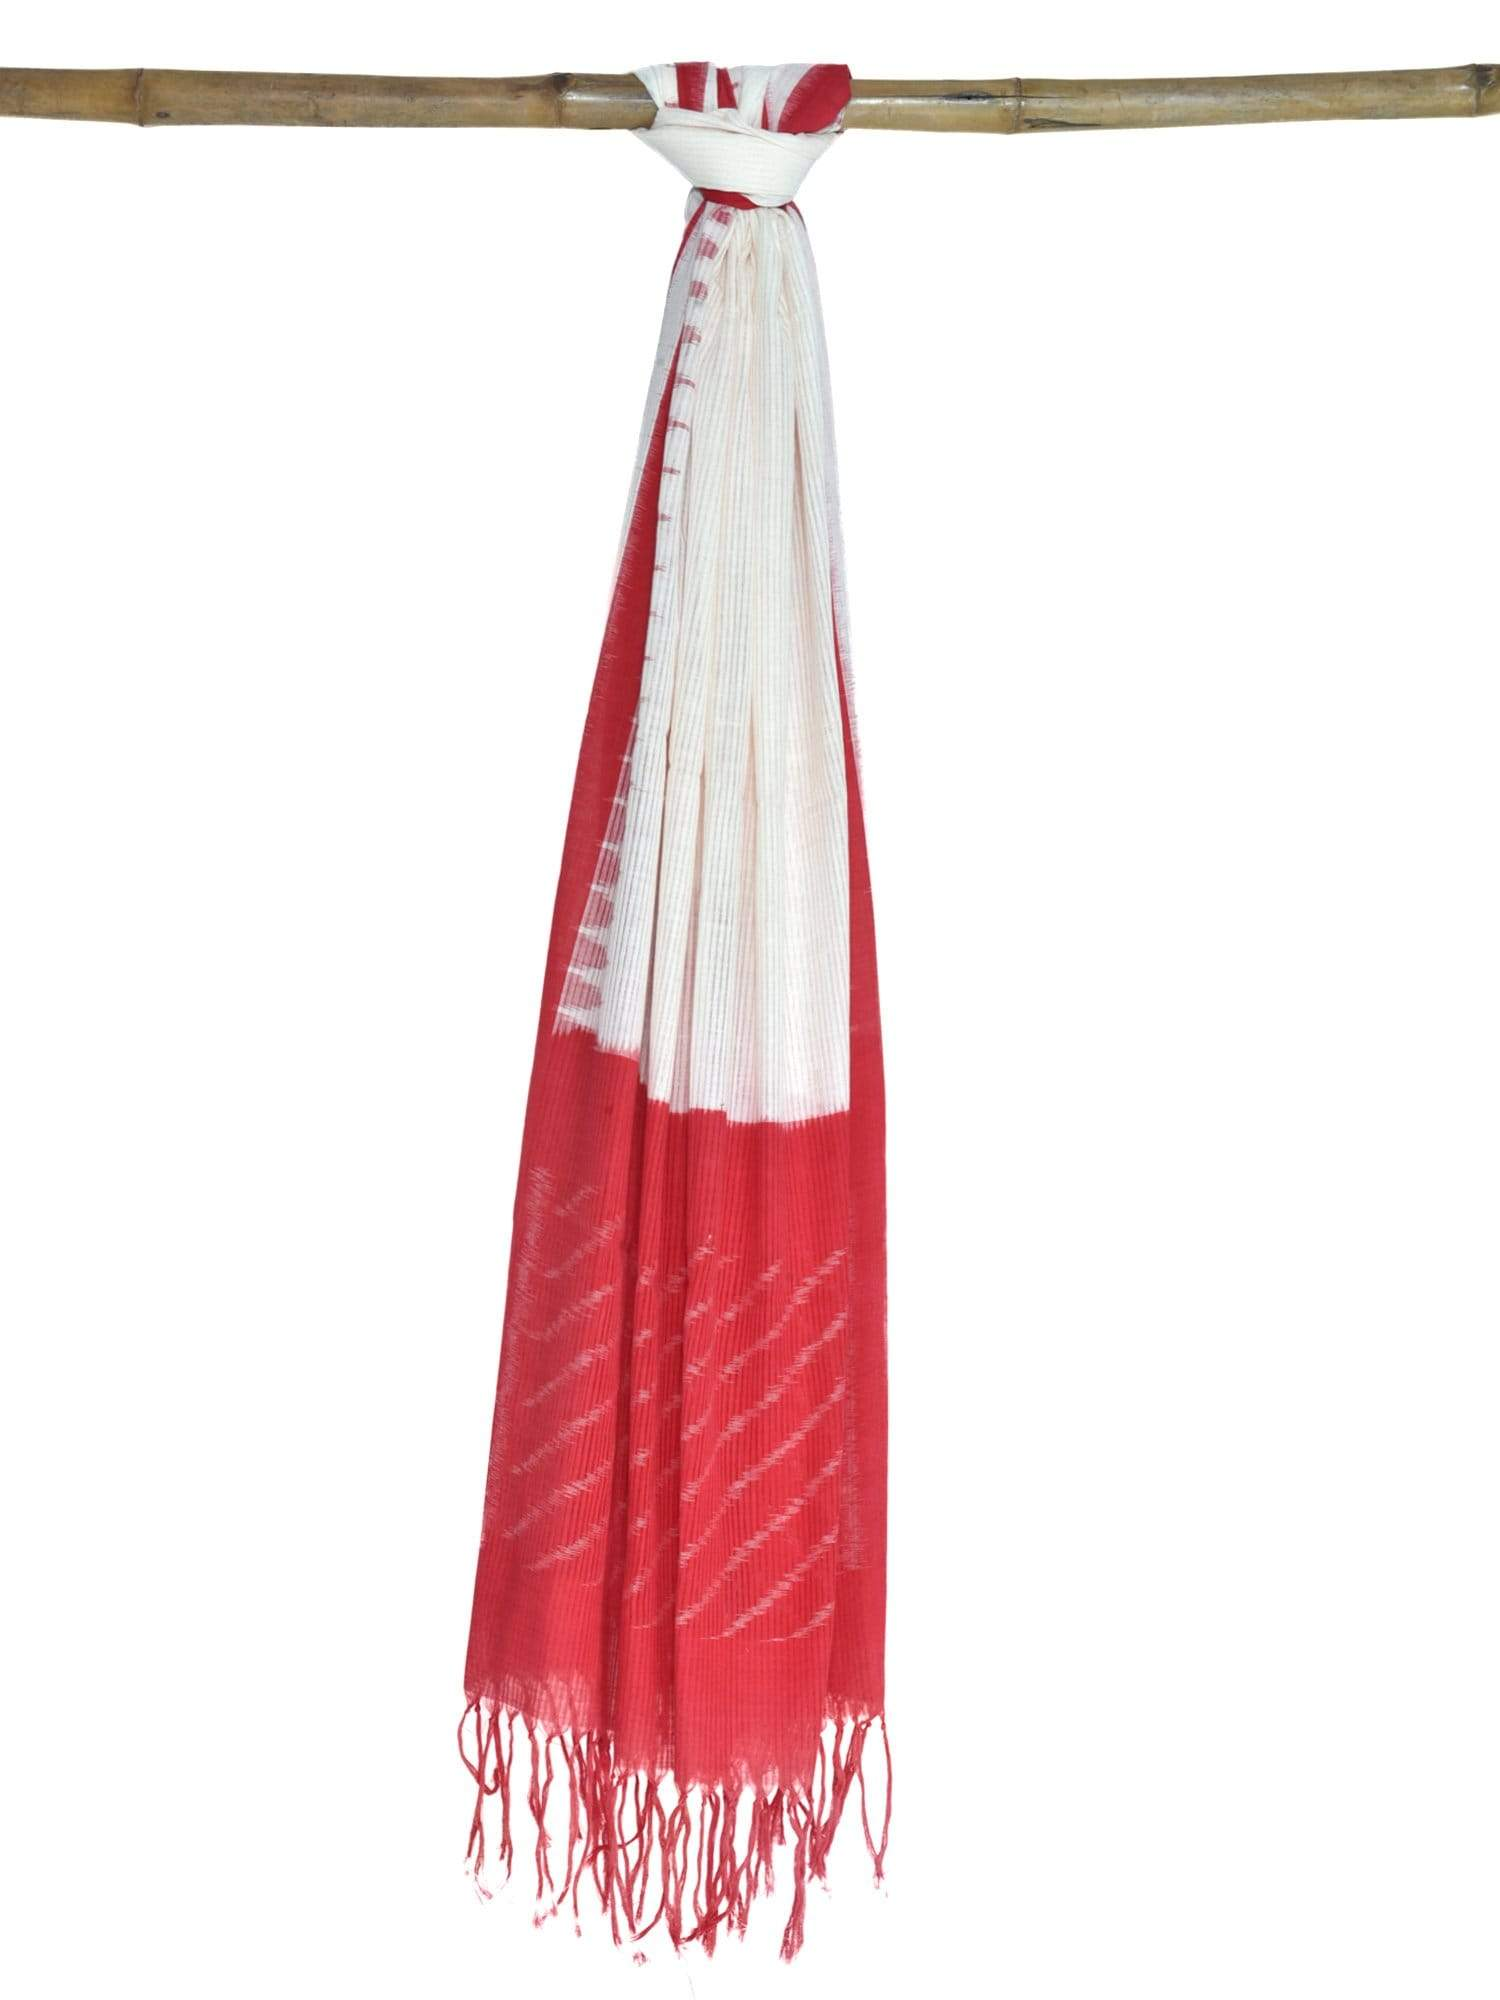 Red Pochampally Ikat Cotton Handloom Dupatta with Temple Border ds1616